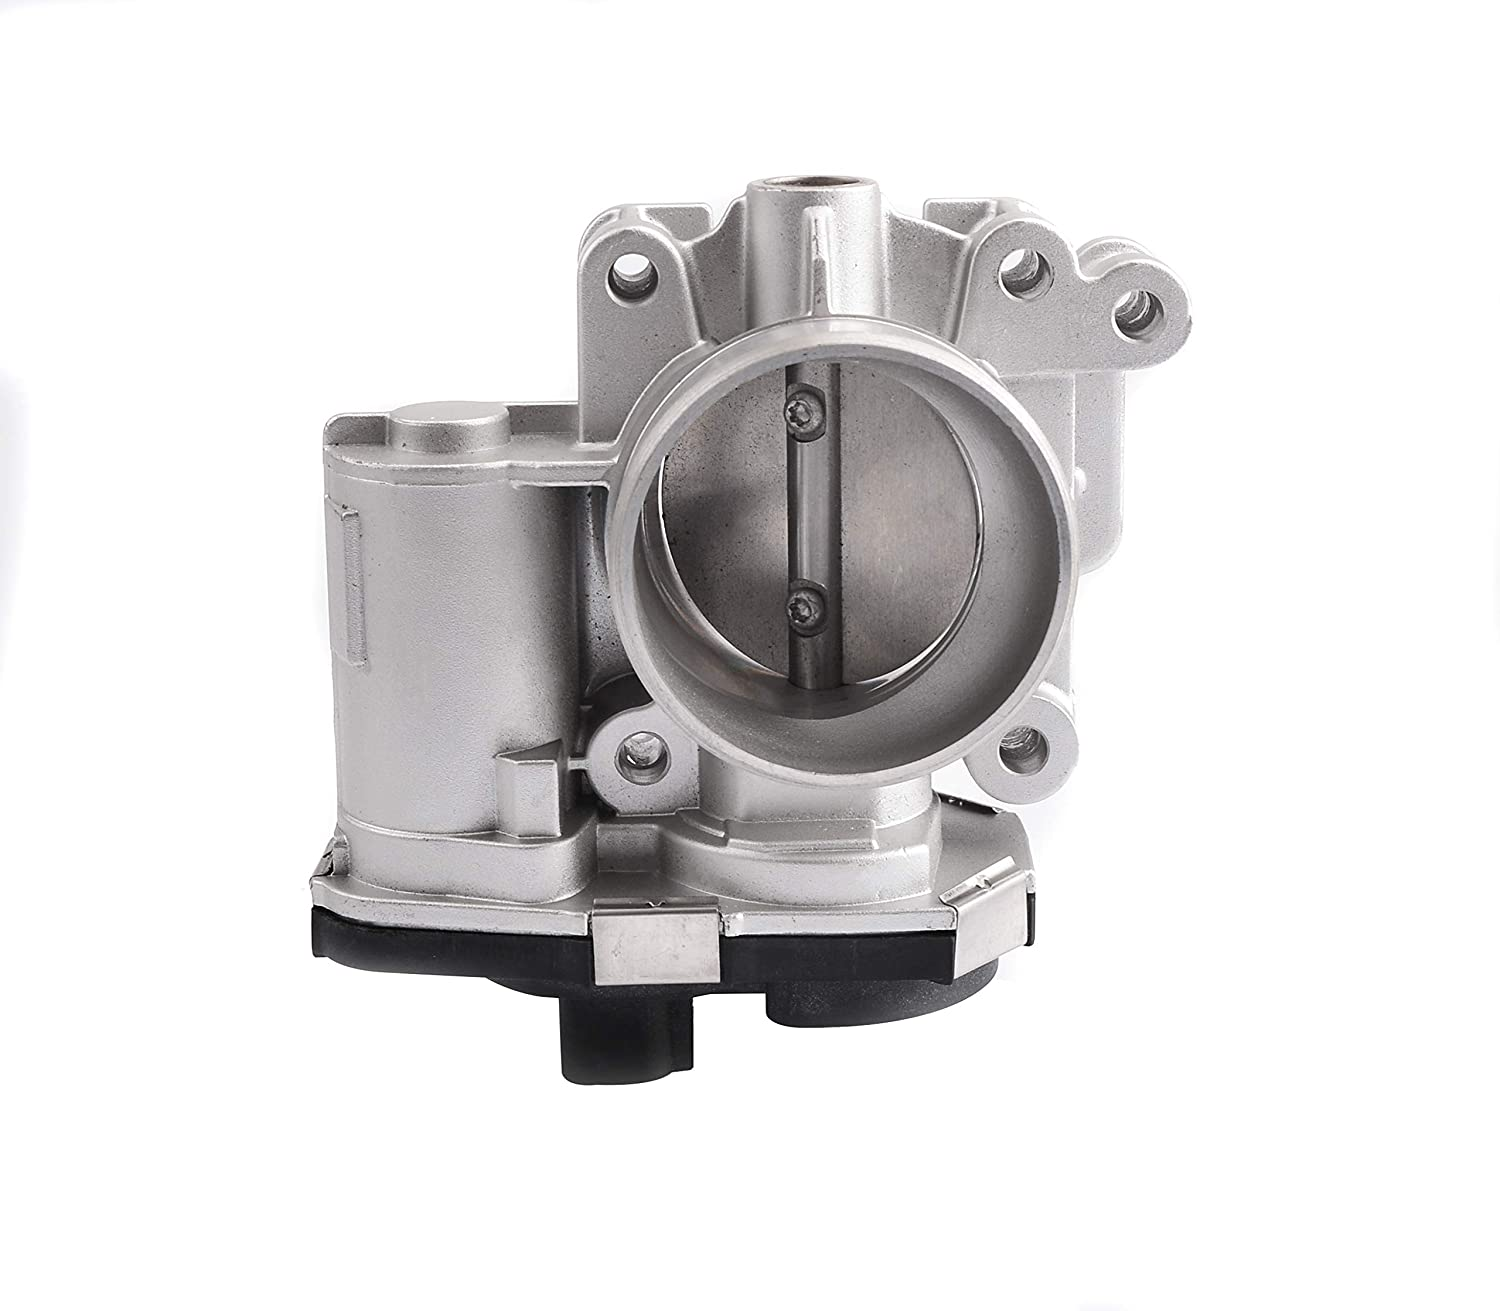 ADIGARAUTO S20092 Throttle Body for Buick 2011 Chevrolet 2010-08 Pontiac 2009-07 Saturn 2010-07